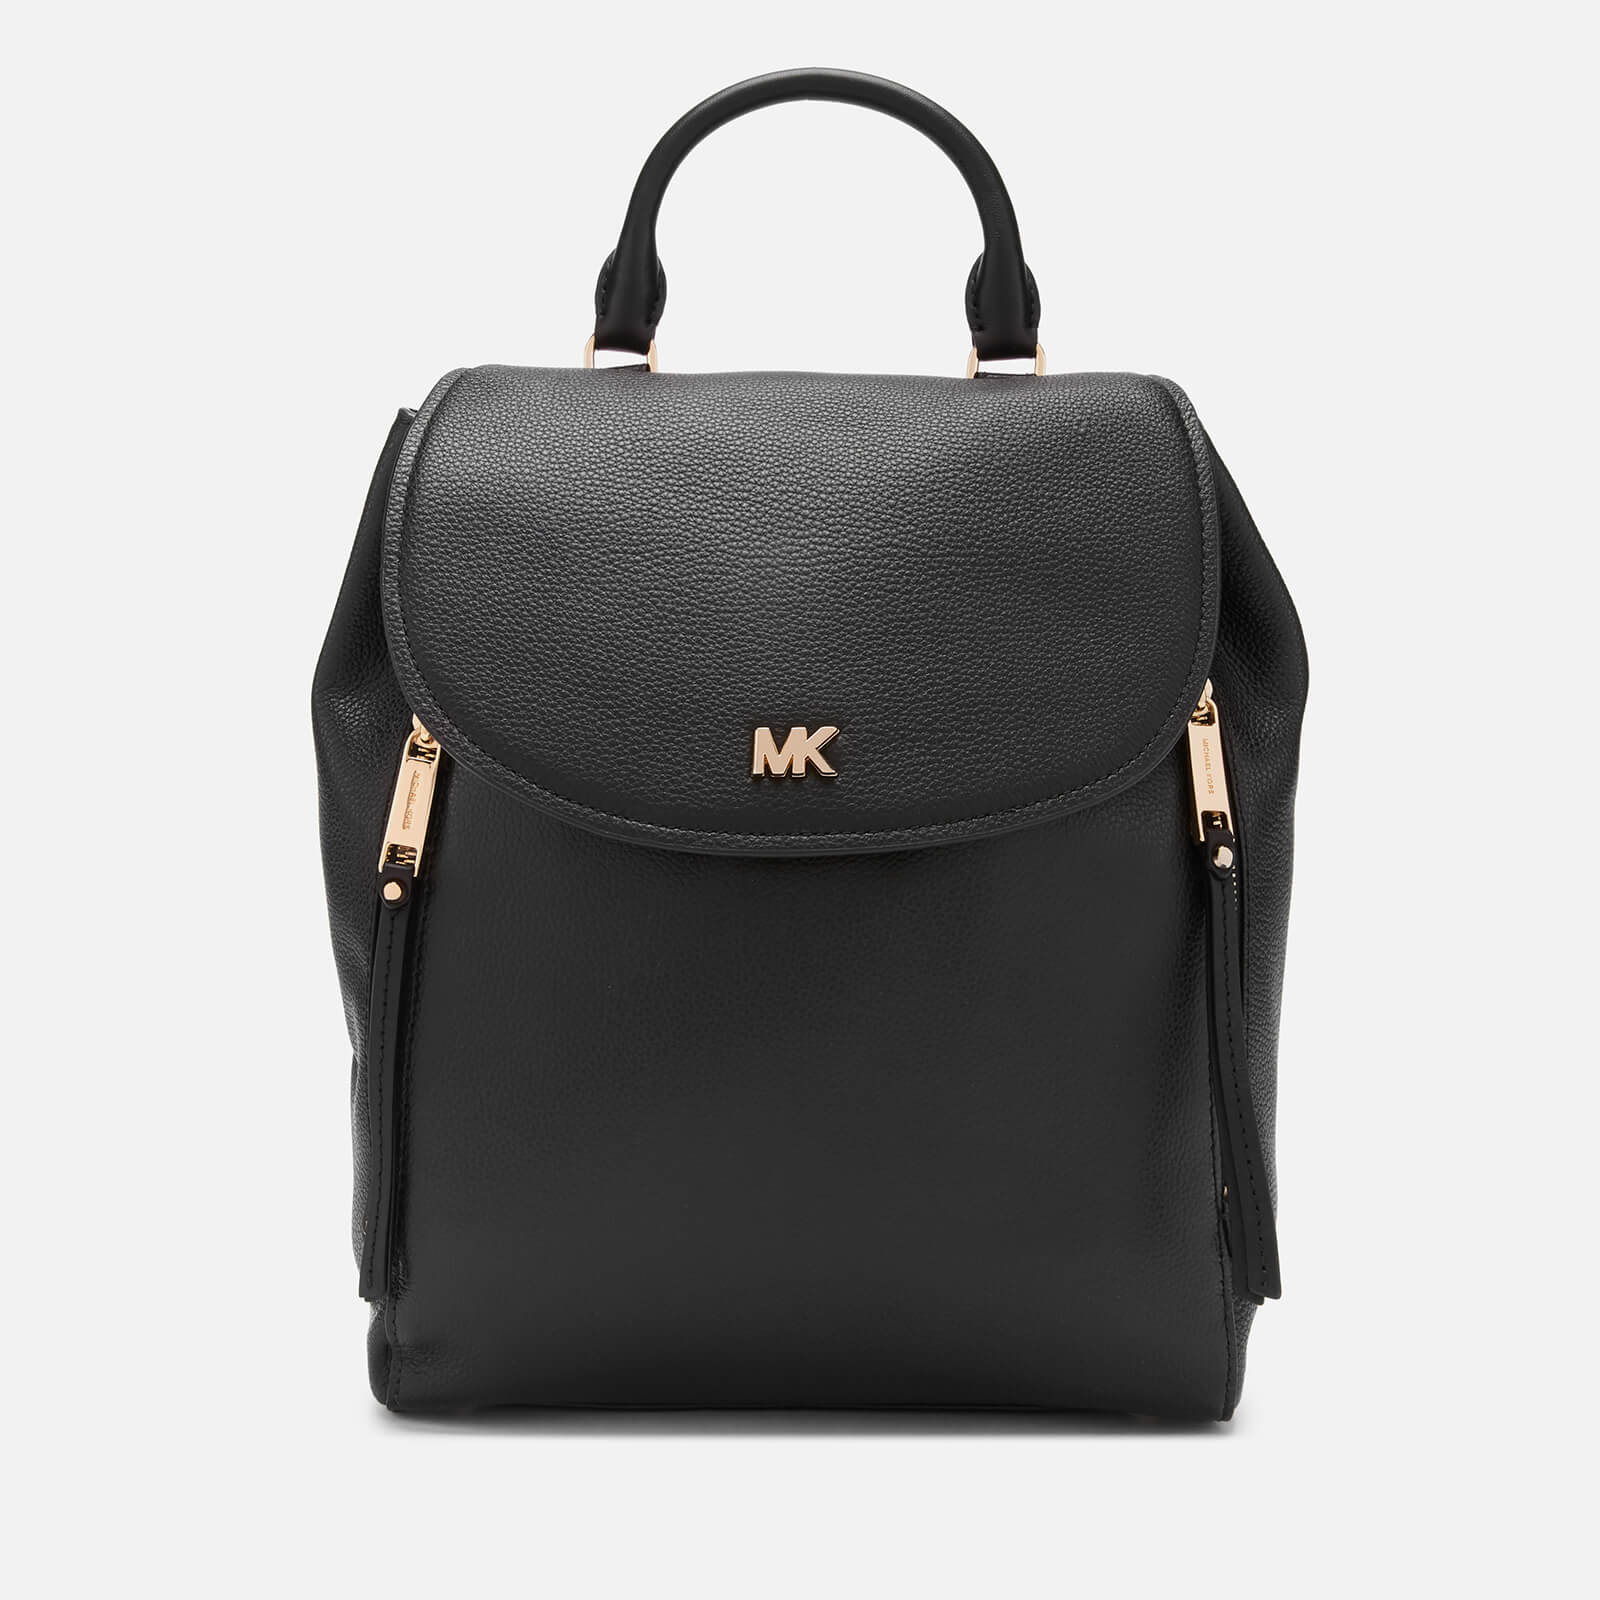 e22ebbc92deff1 MICHAEL MICHAEL KORS Women's Evie Medium Backpack - Black Womens  Accessories | TheHut.com